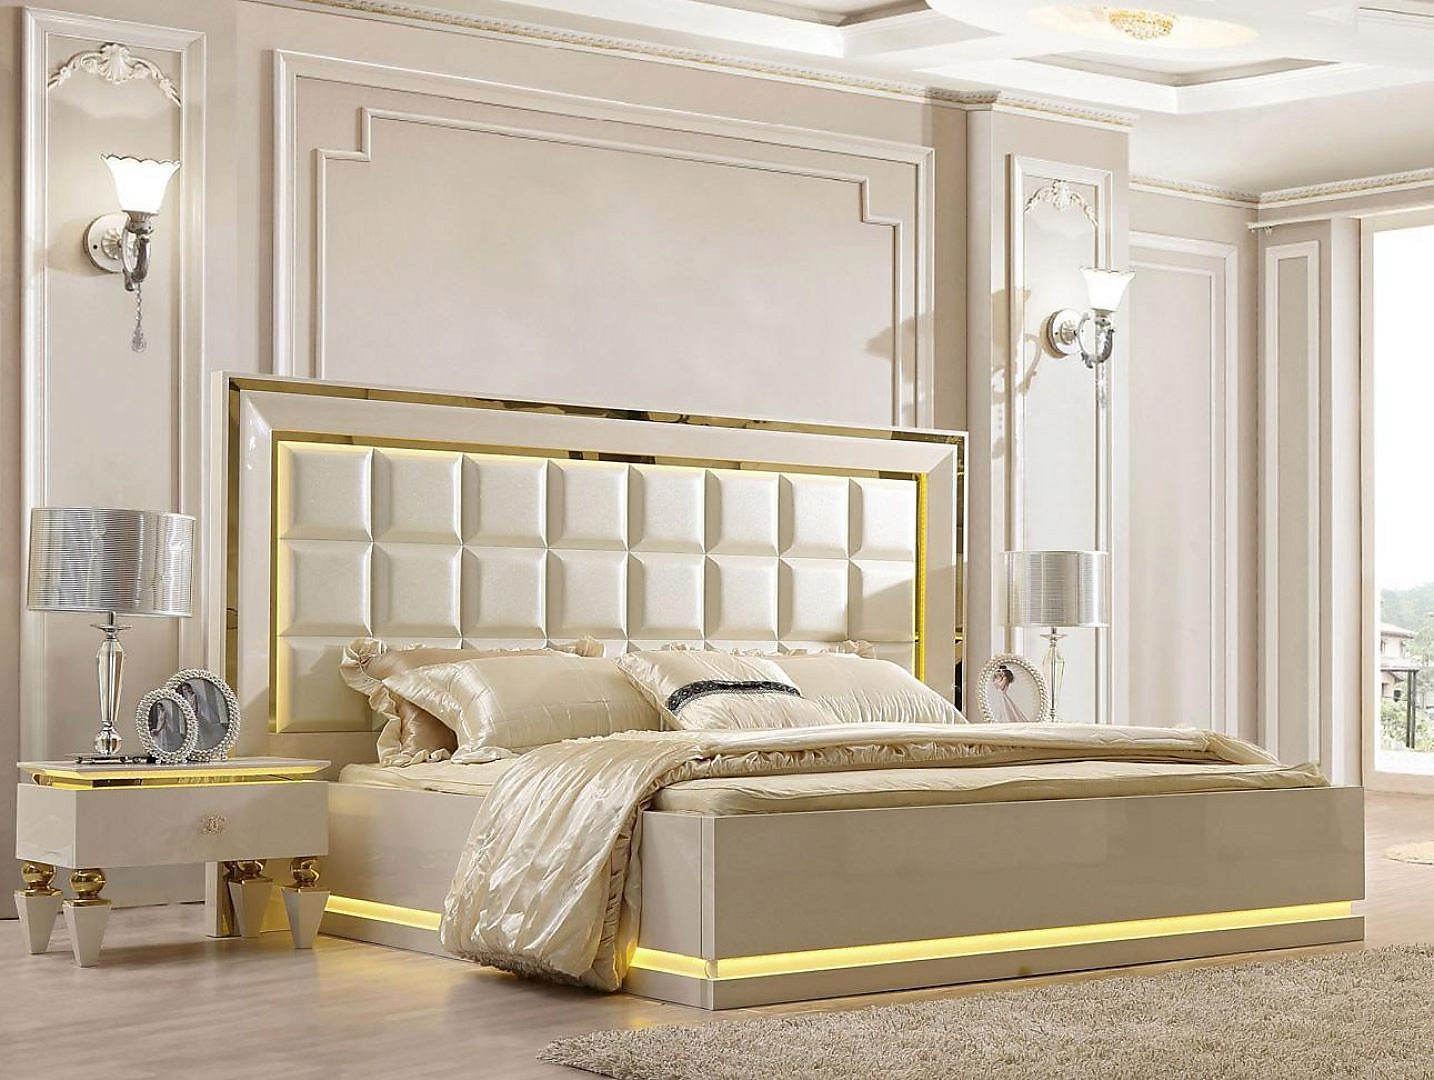 Quilted Hdb Glossy Ivory KING Bedroom Set 3P w/ Led L-s HD-9935 Homey Design